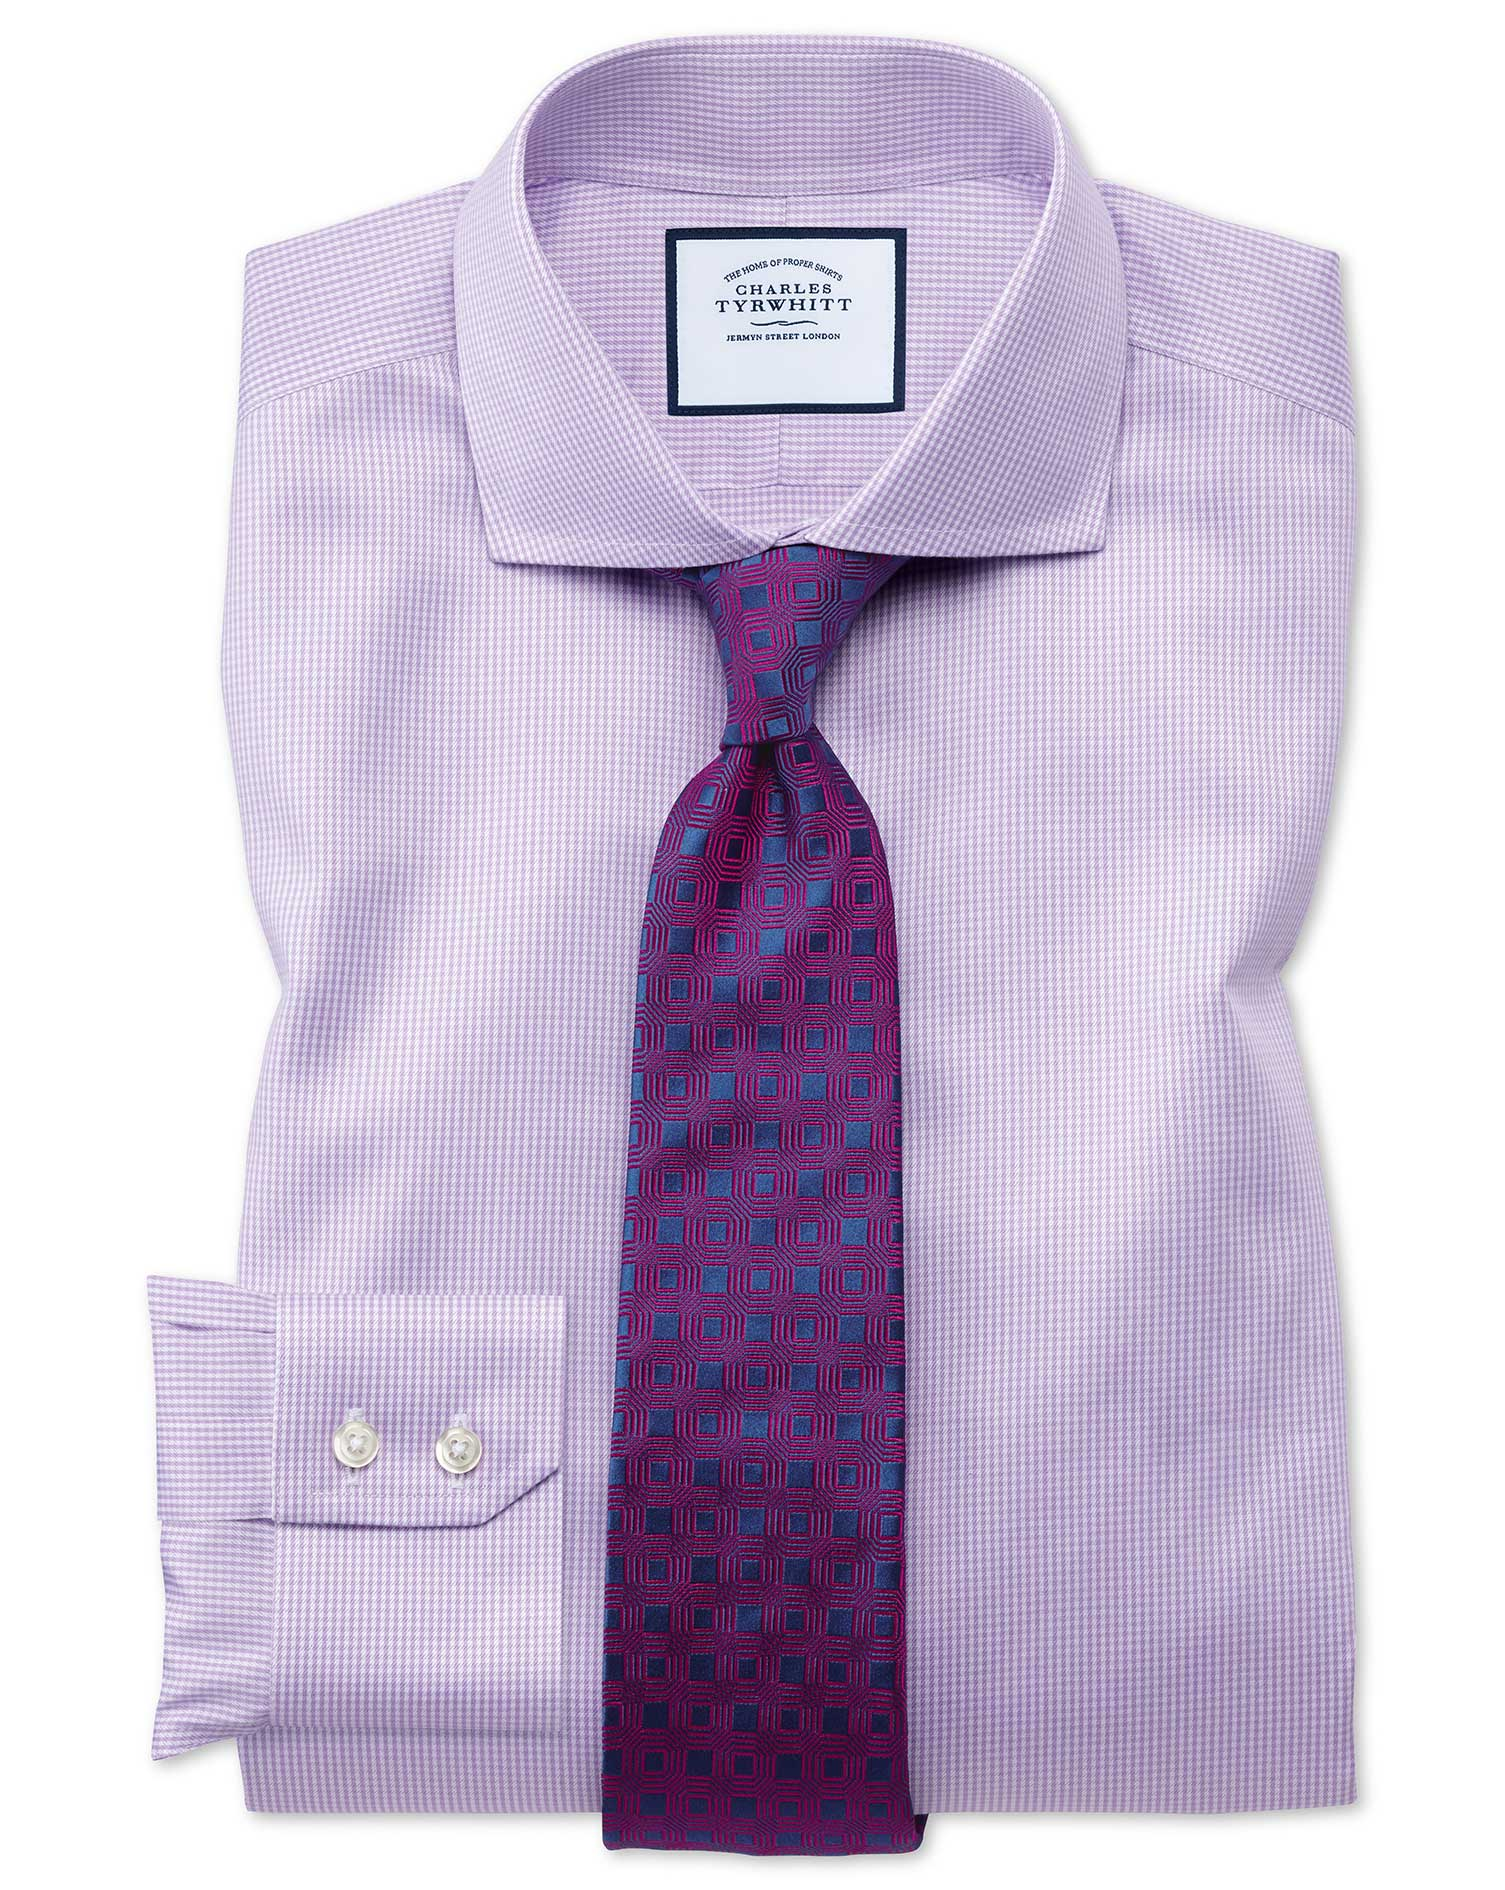 Extra Slim Fit Cutaway Non-Iron Puppytooth Lilac Cotton Formal Shirt Double Cuff Size 16/36 by Charl